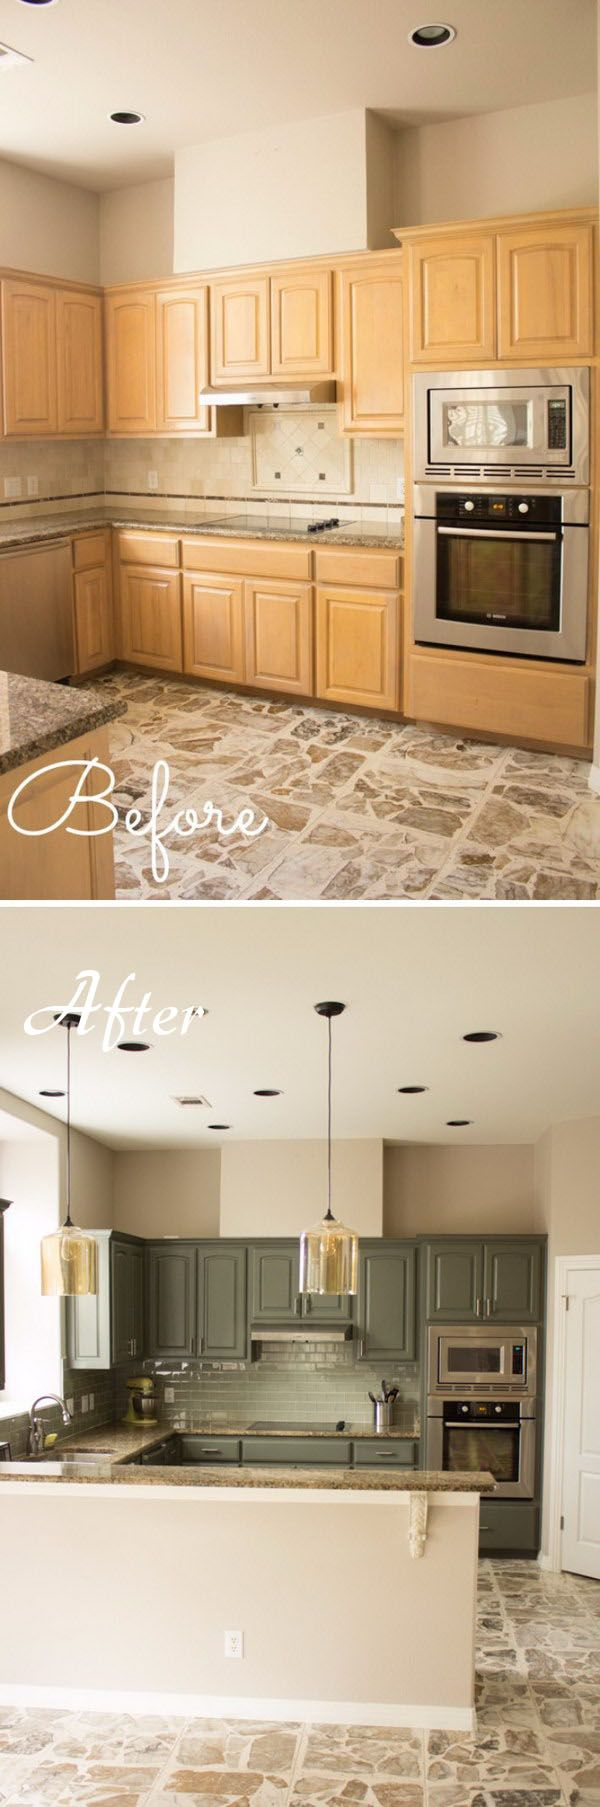 Kitchen Makeover 17 Best Ideas About Kitchen Makeovers On Pinterest Painting